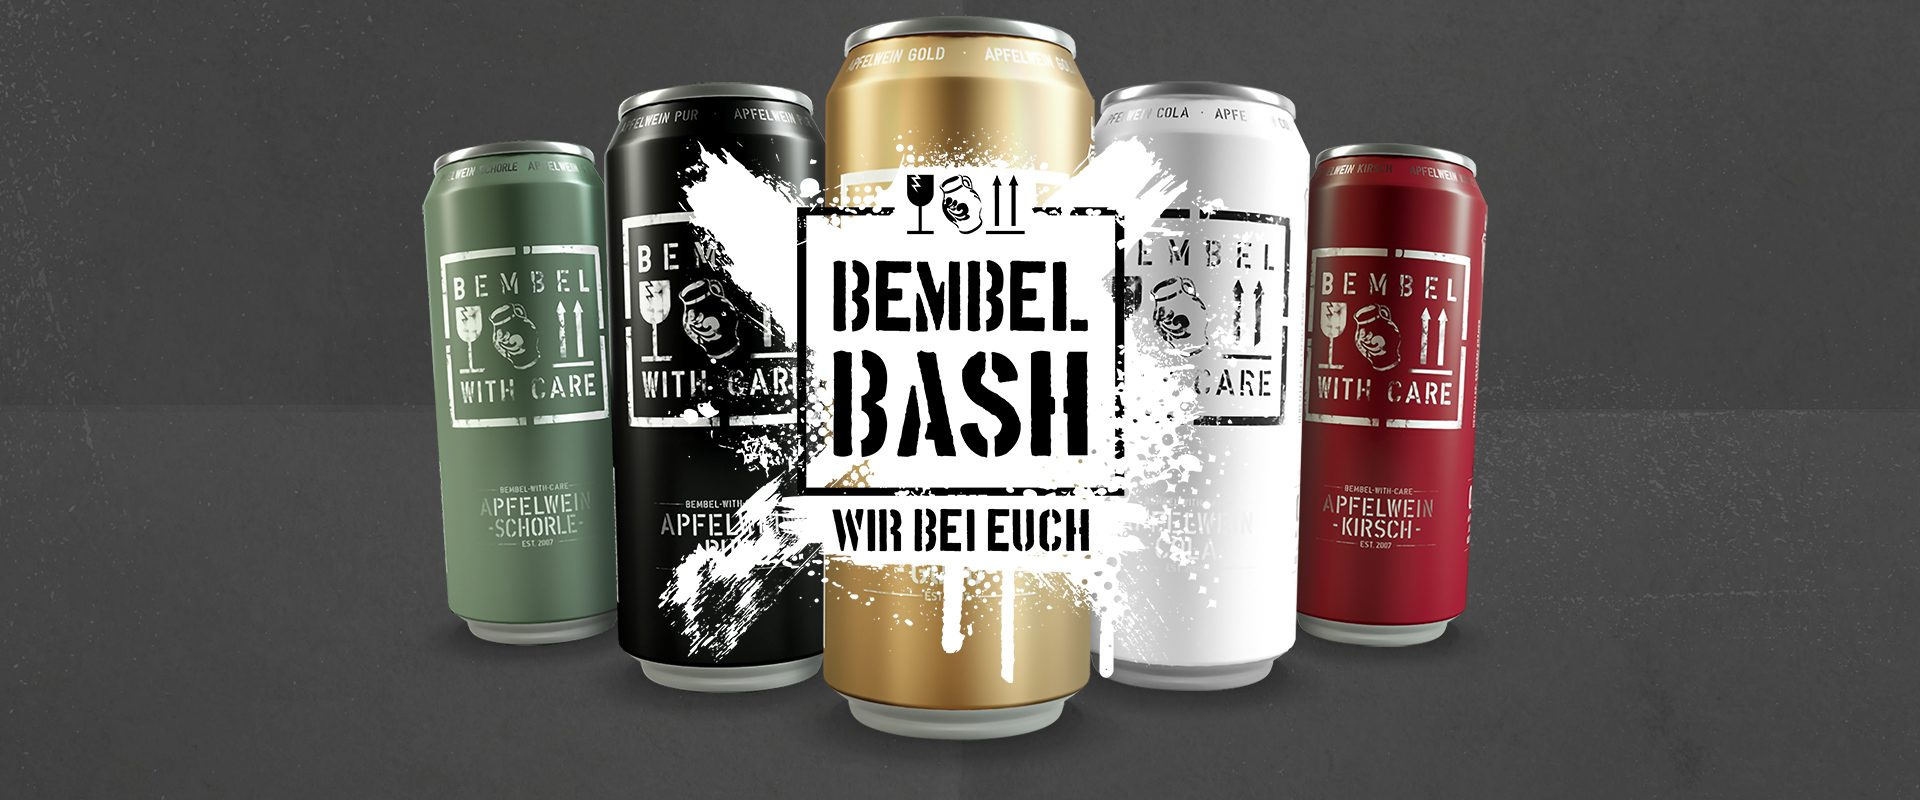 BEMBEL-WITH-CARE Bembel-Bash